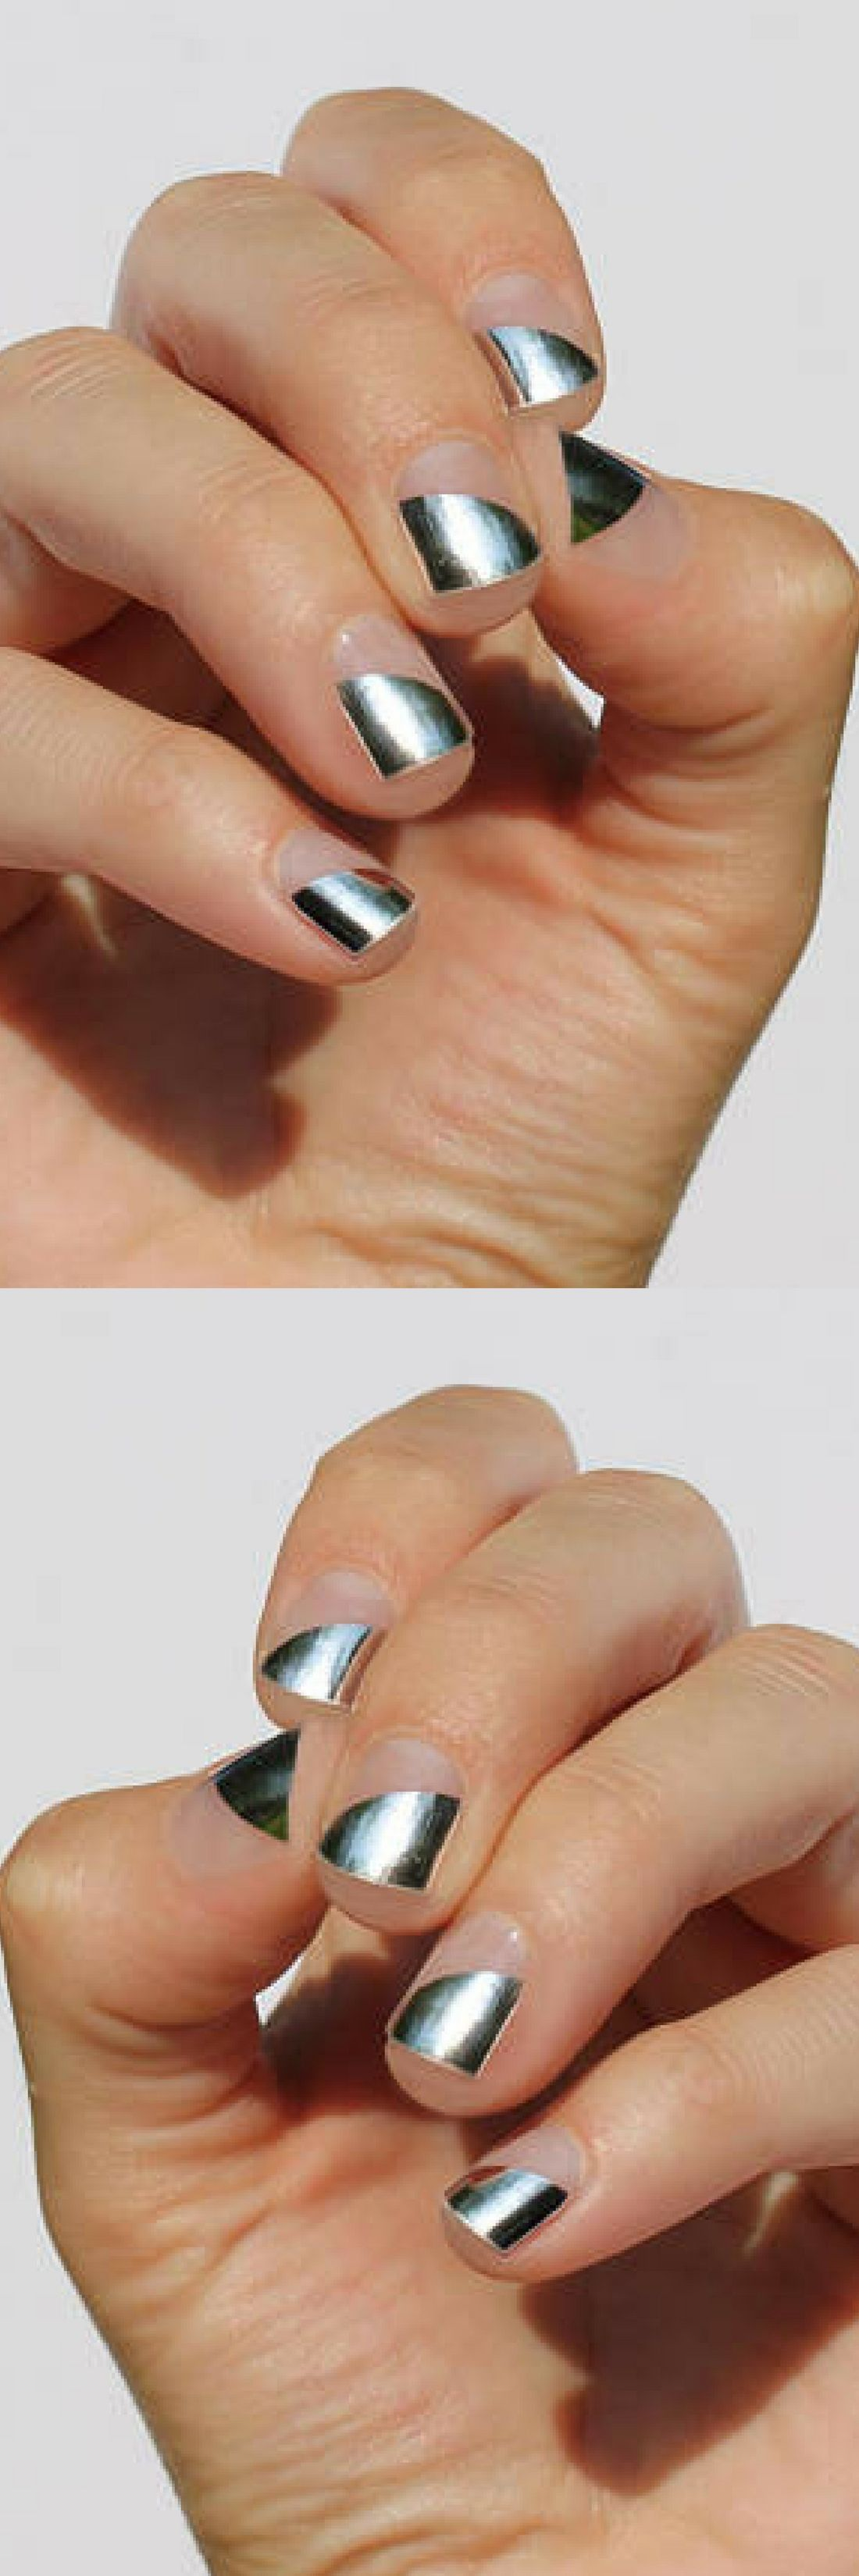 Silver Modern French Nail Wraps Just heat, stick & file your way to ...